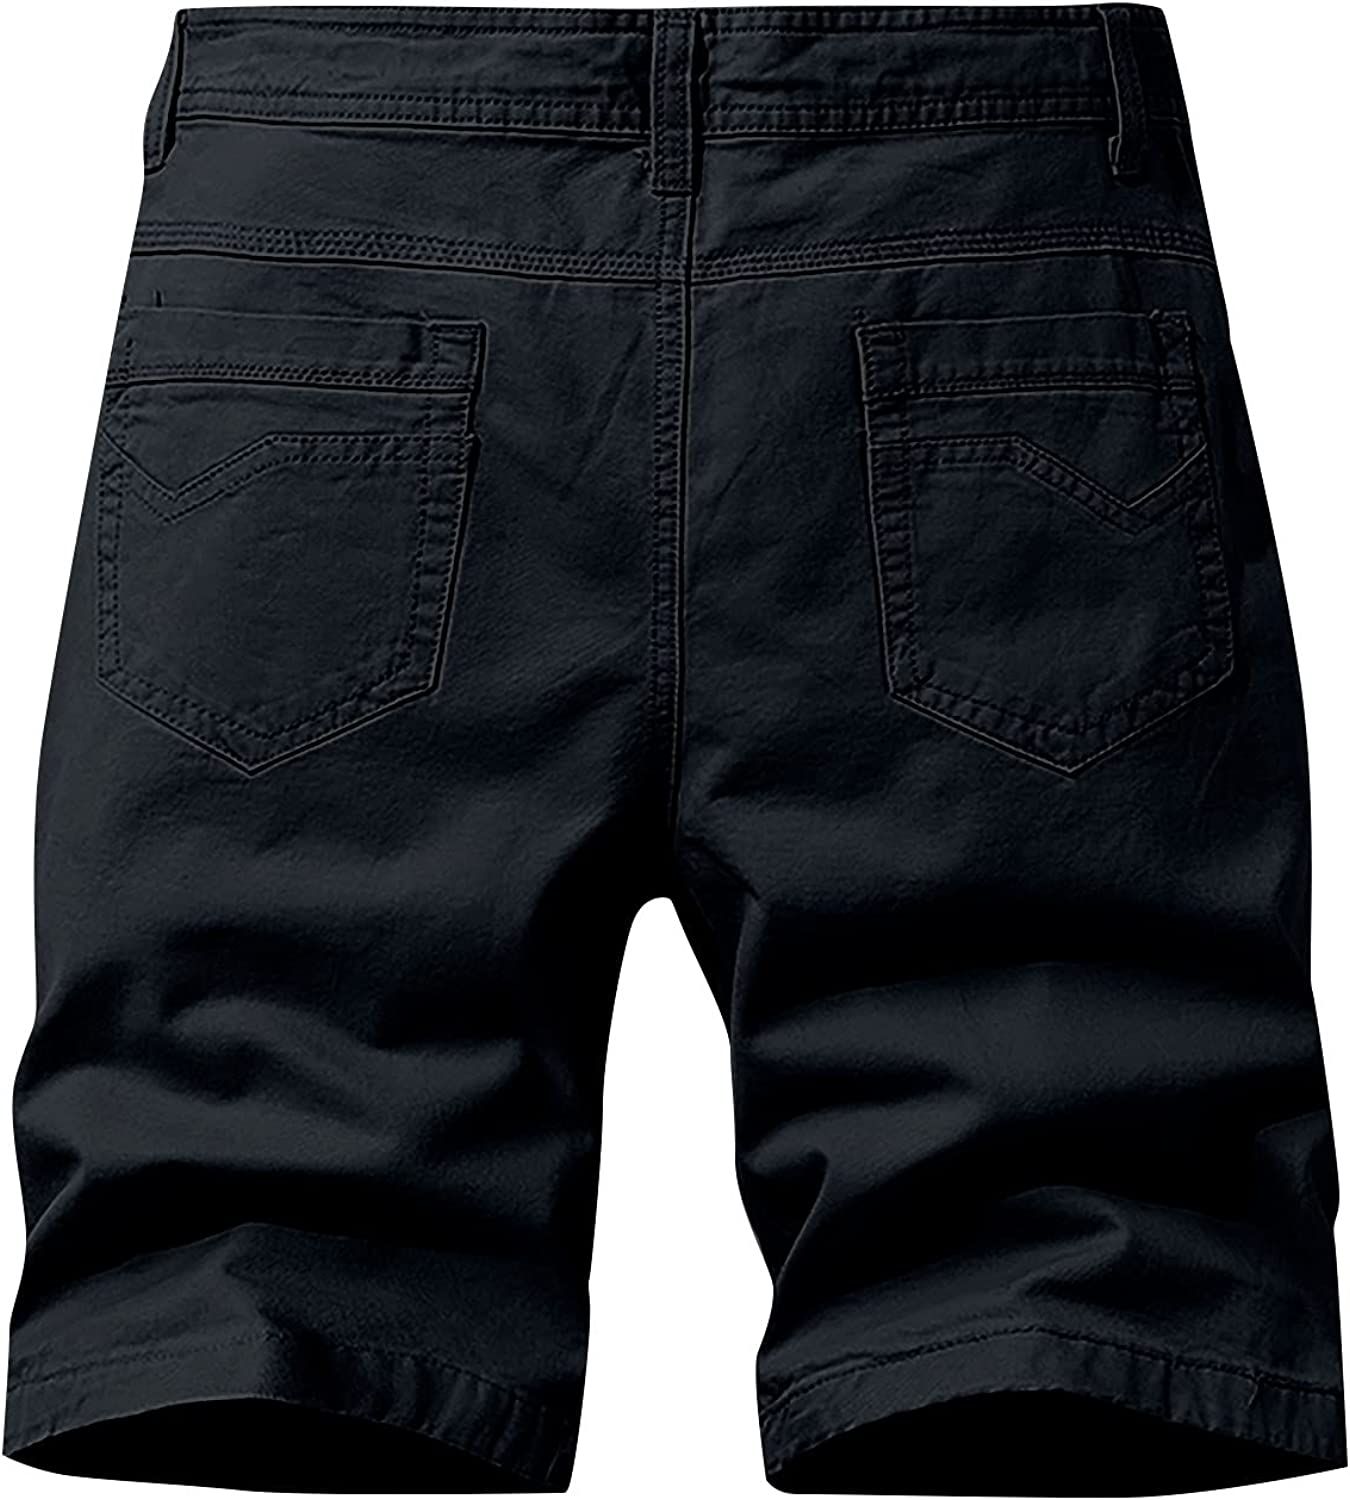 ZCAITIANYA Men's Cargo Shorts Outdoor Casual Solid Lightweight Workout Hiking Relaxed Fit Stretch Summer with Zipper Pockets